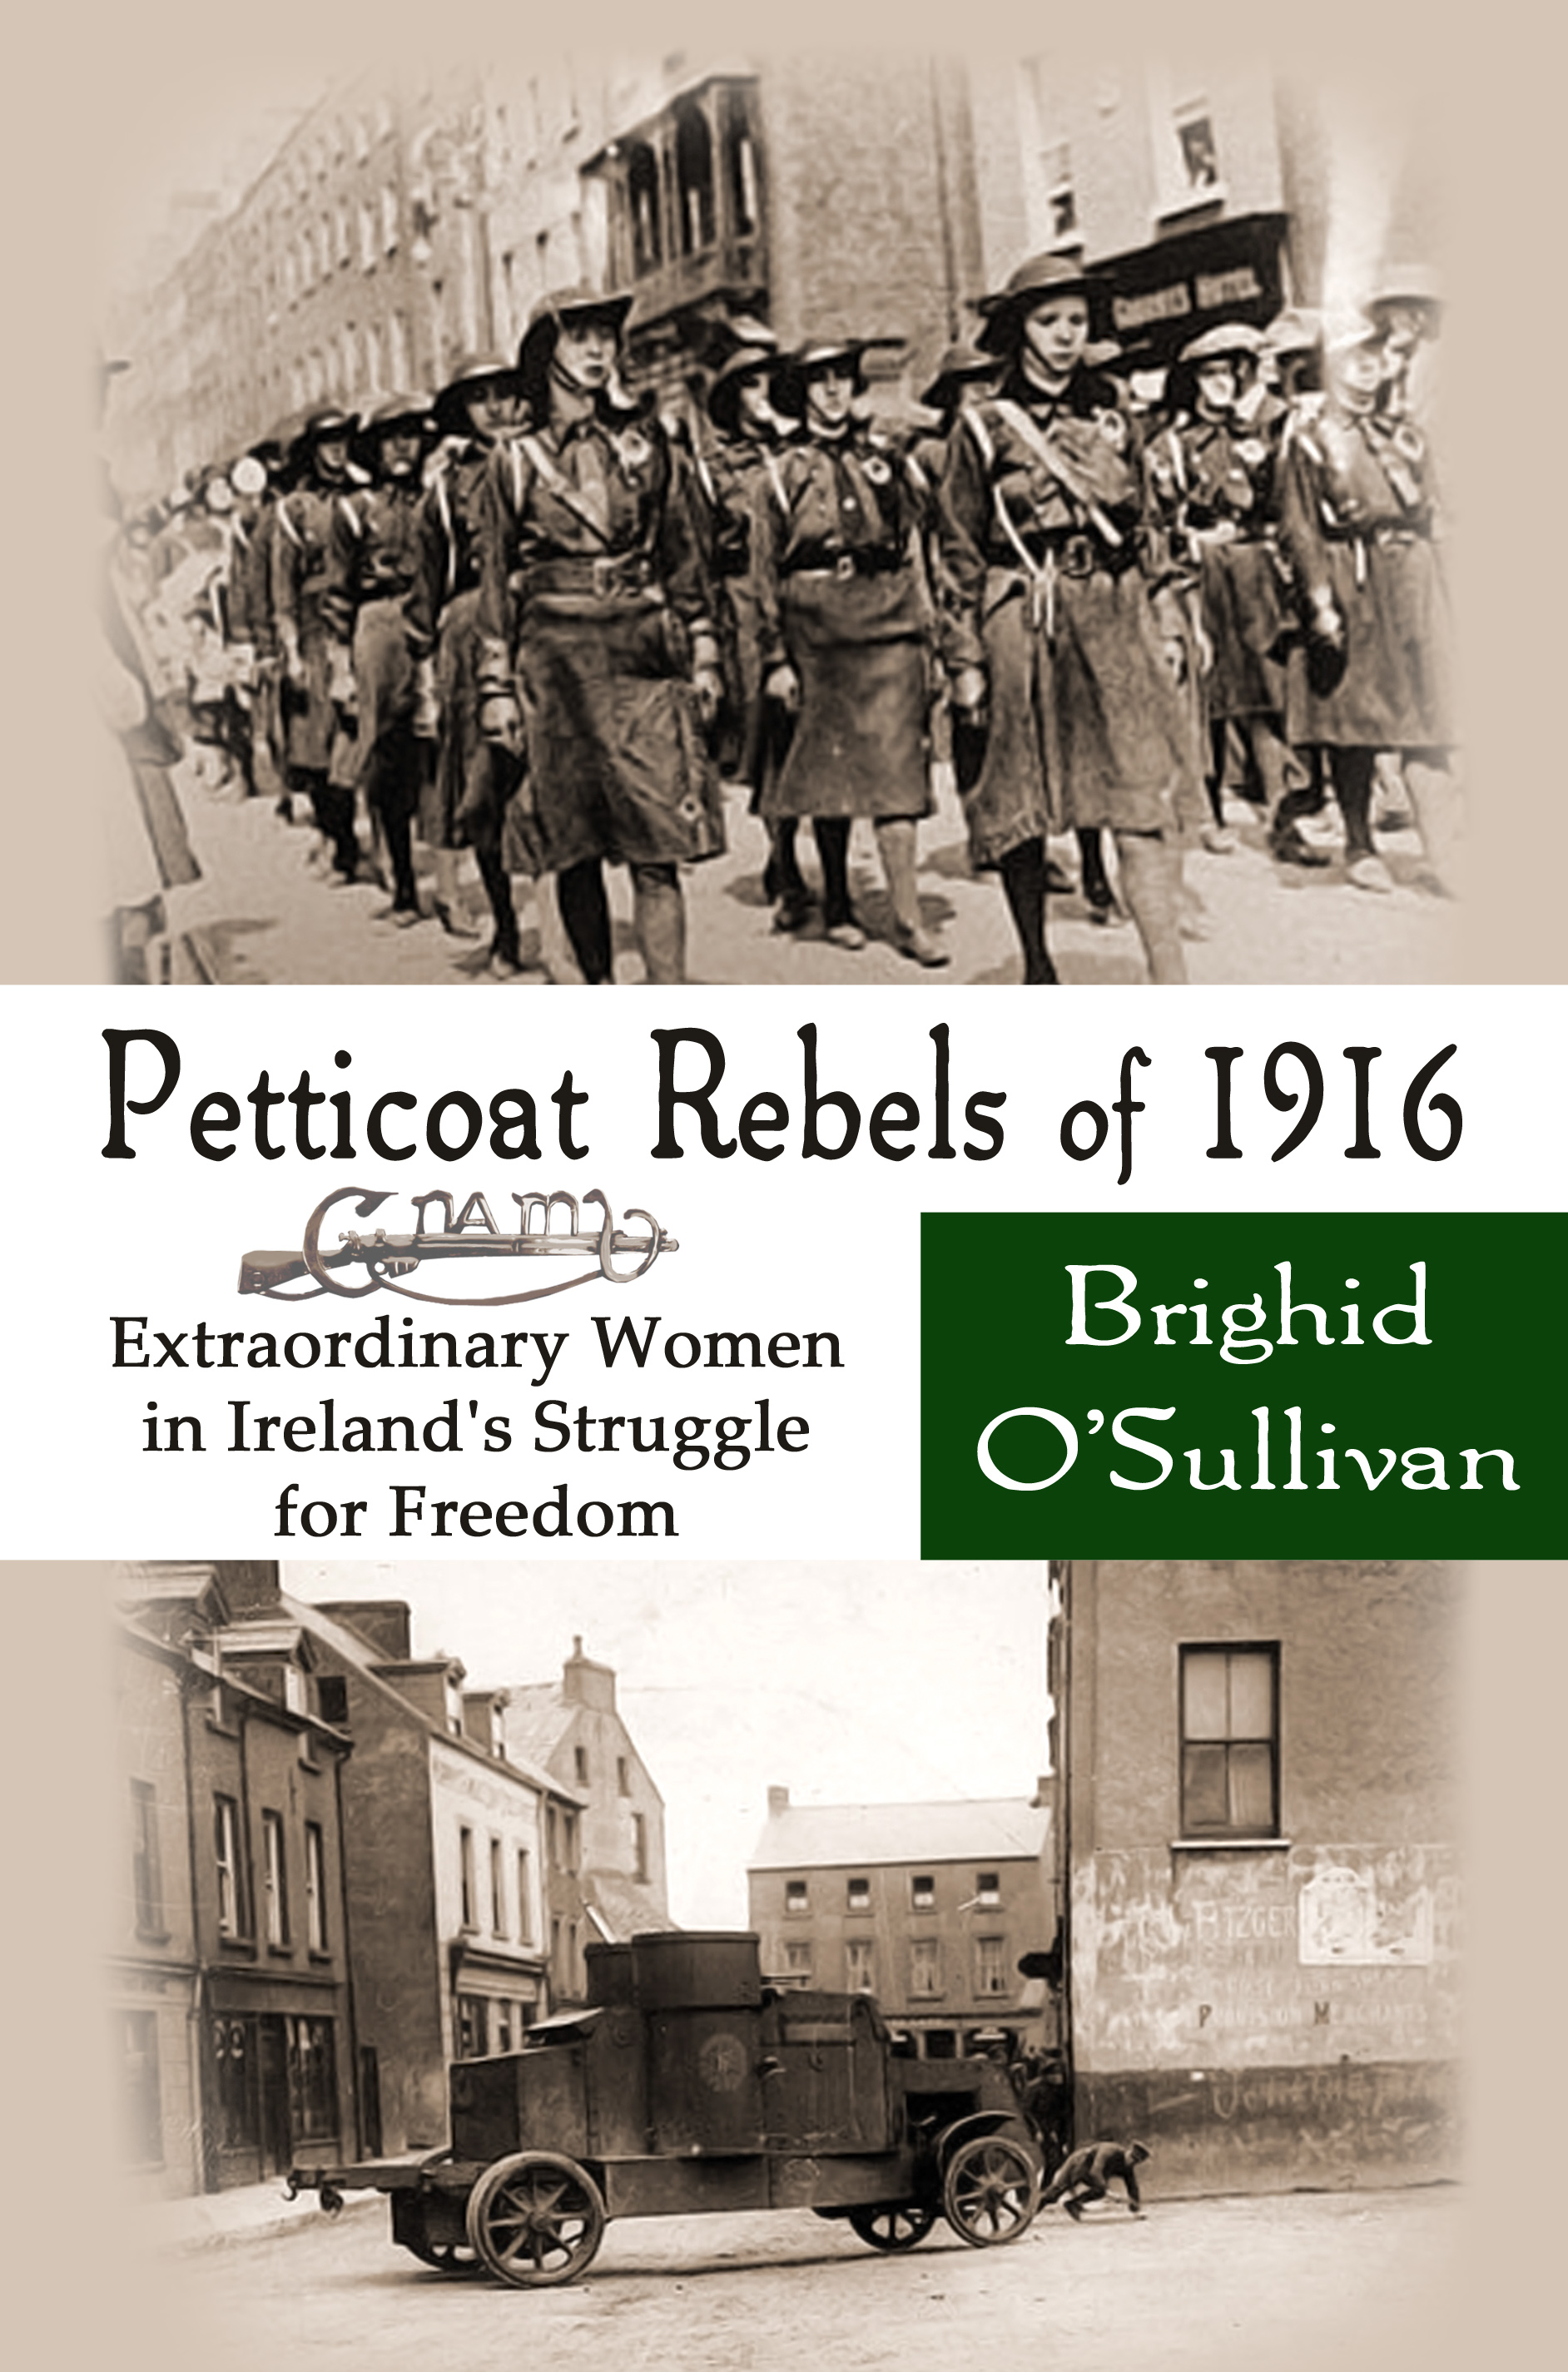 Celtic thoughts by brighid osullivanceltic thoughts by brighid petticoat rebels 1916 extraordinary irelands by brighid osullivan fandeluxe Gallery